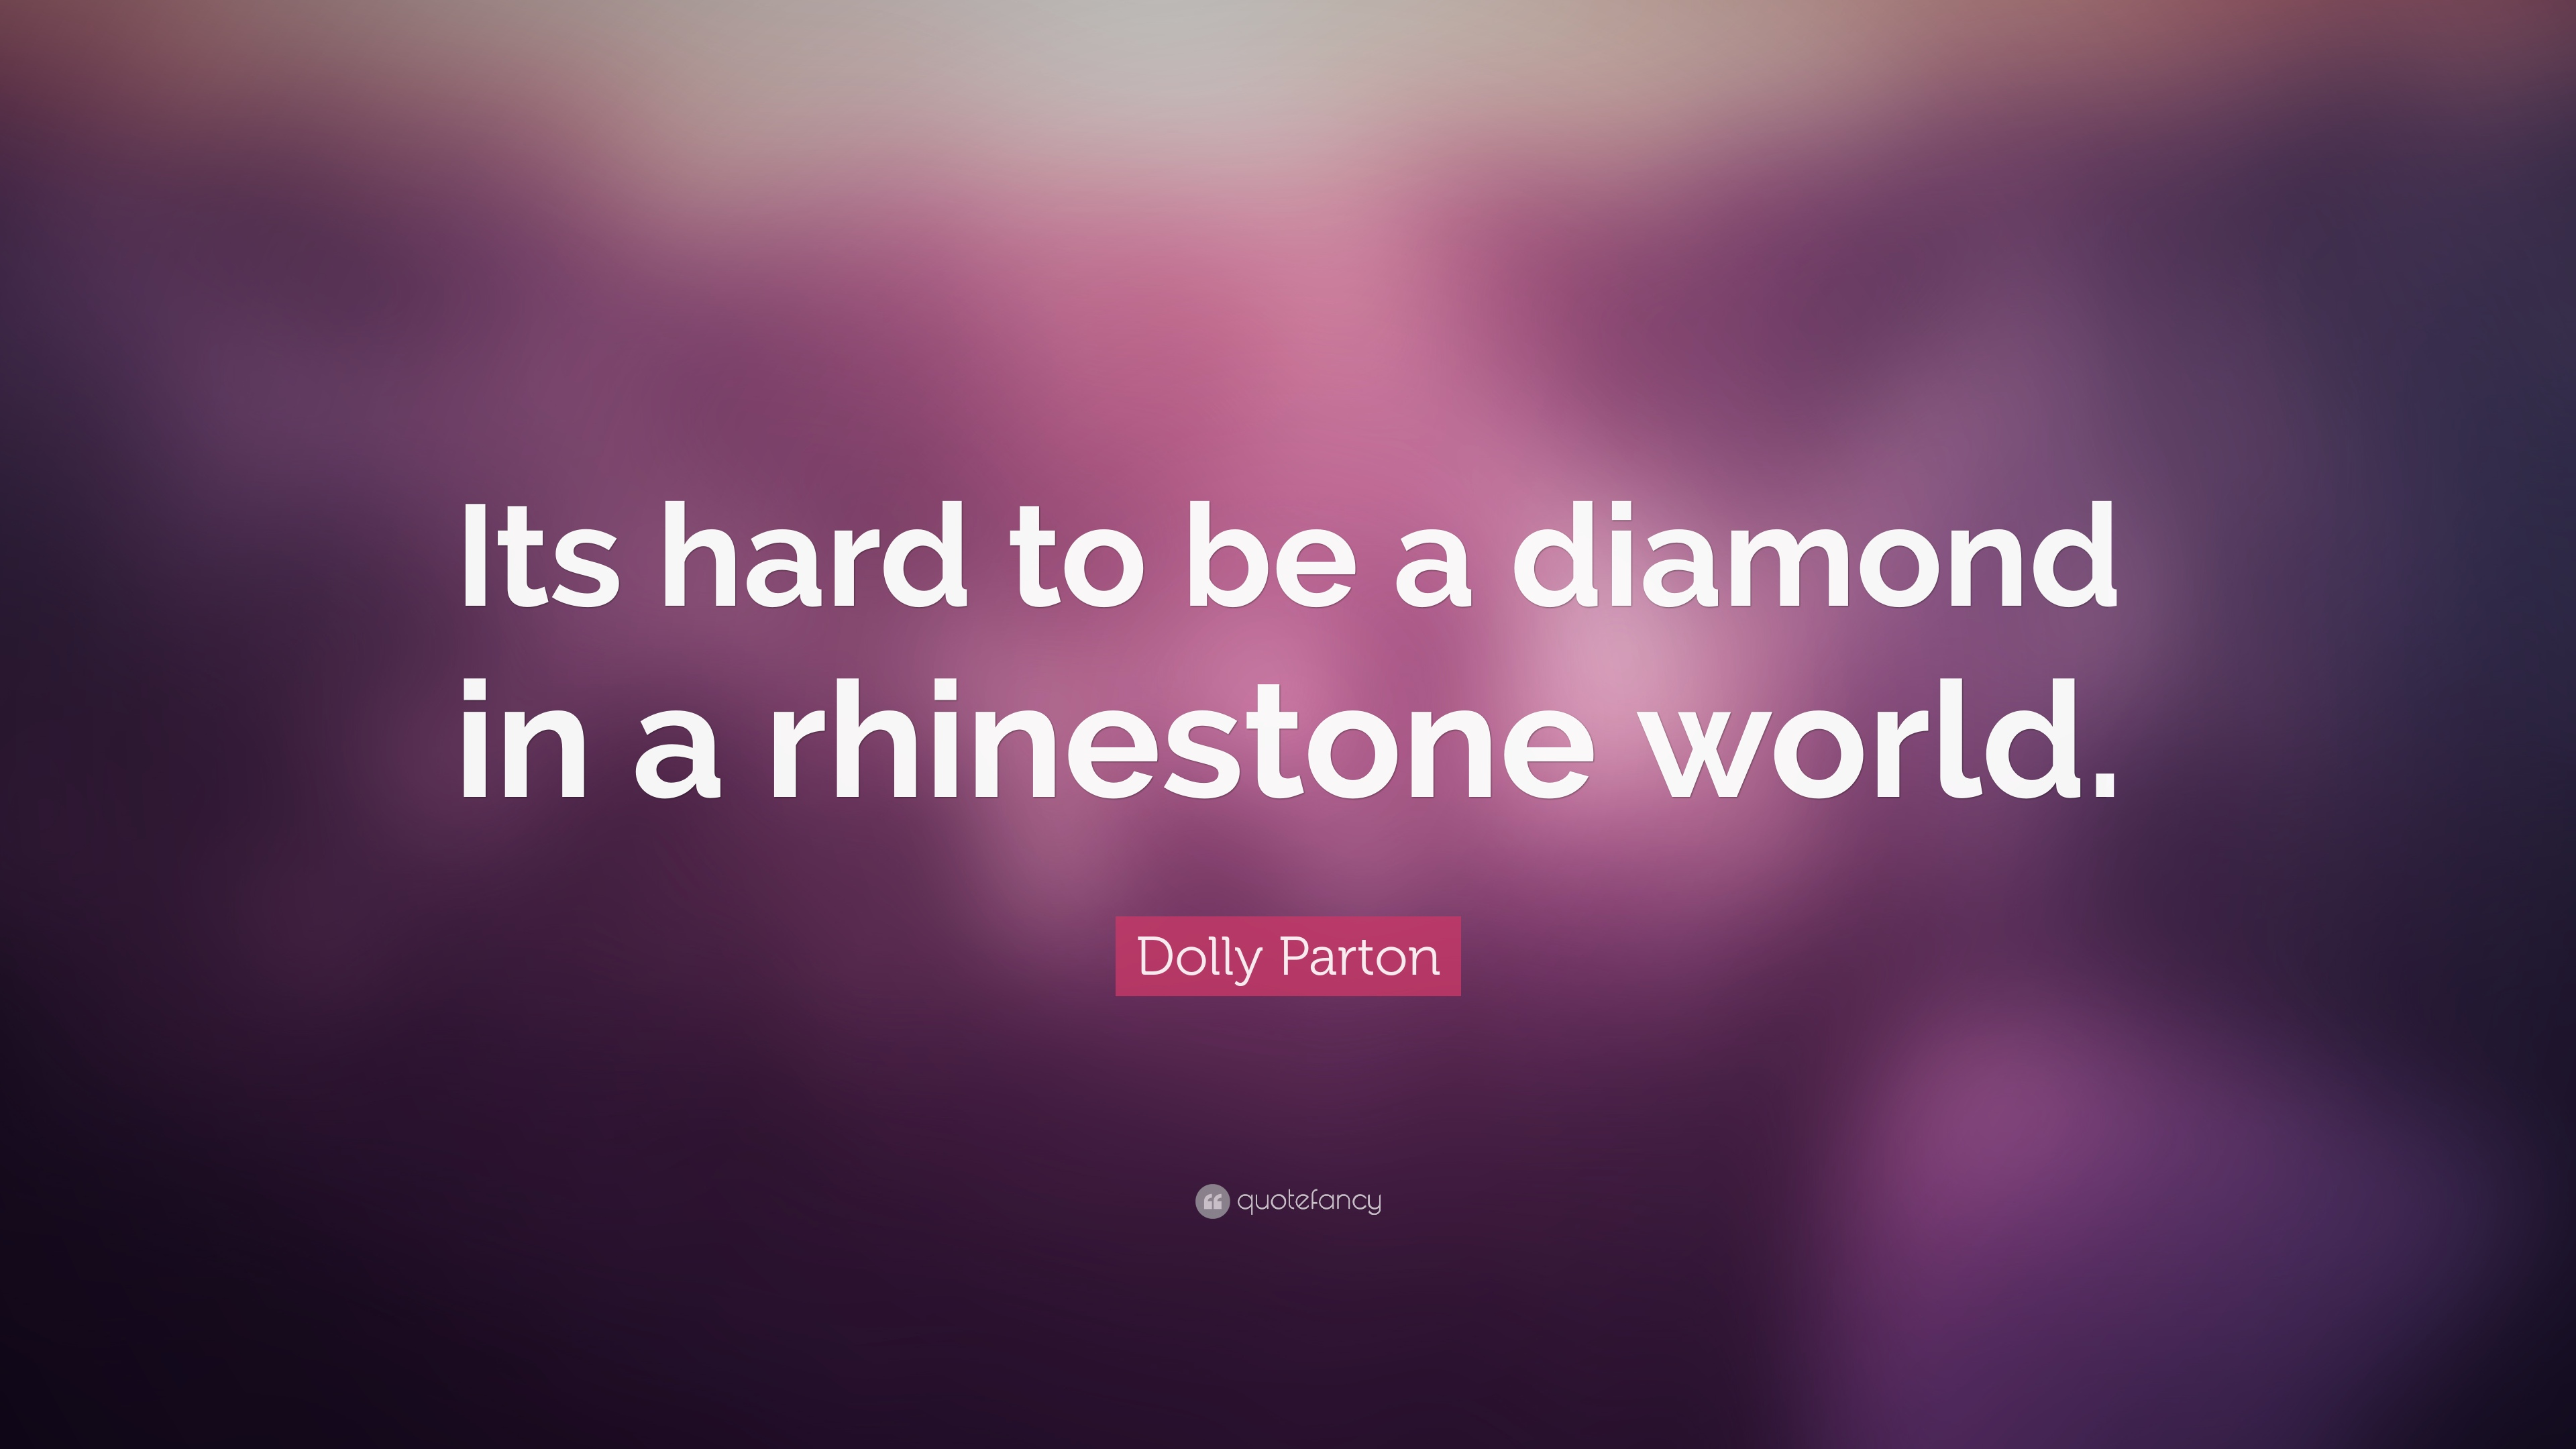 all an diamonds before diamond world stones preeminent gleamed fire that stands idol among d precious eye in with s fancy quote holds our such the quotes